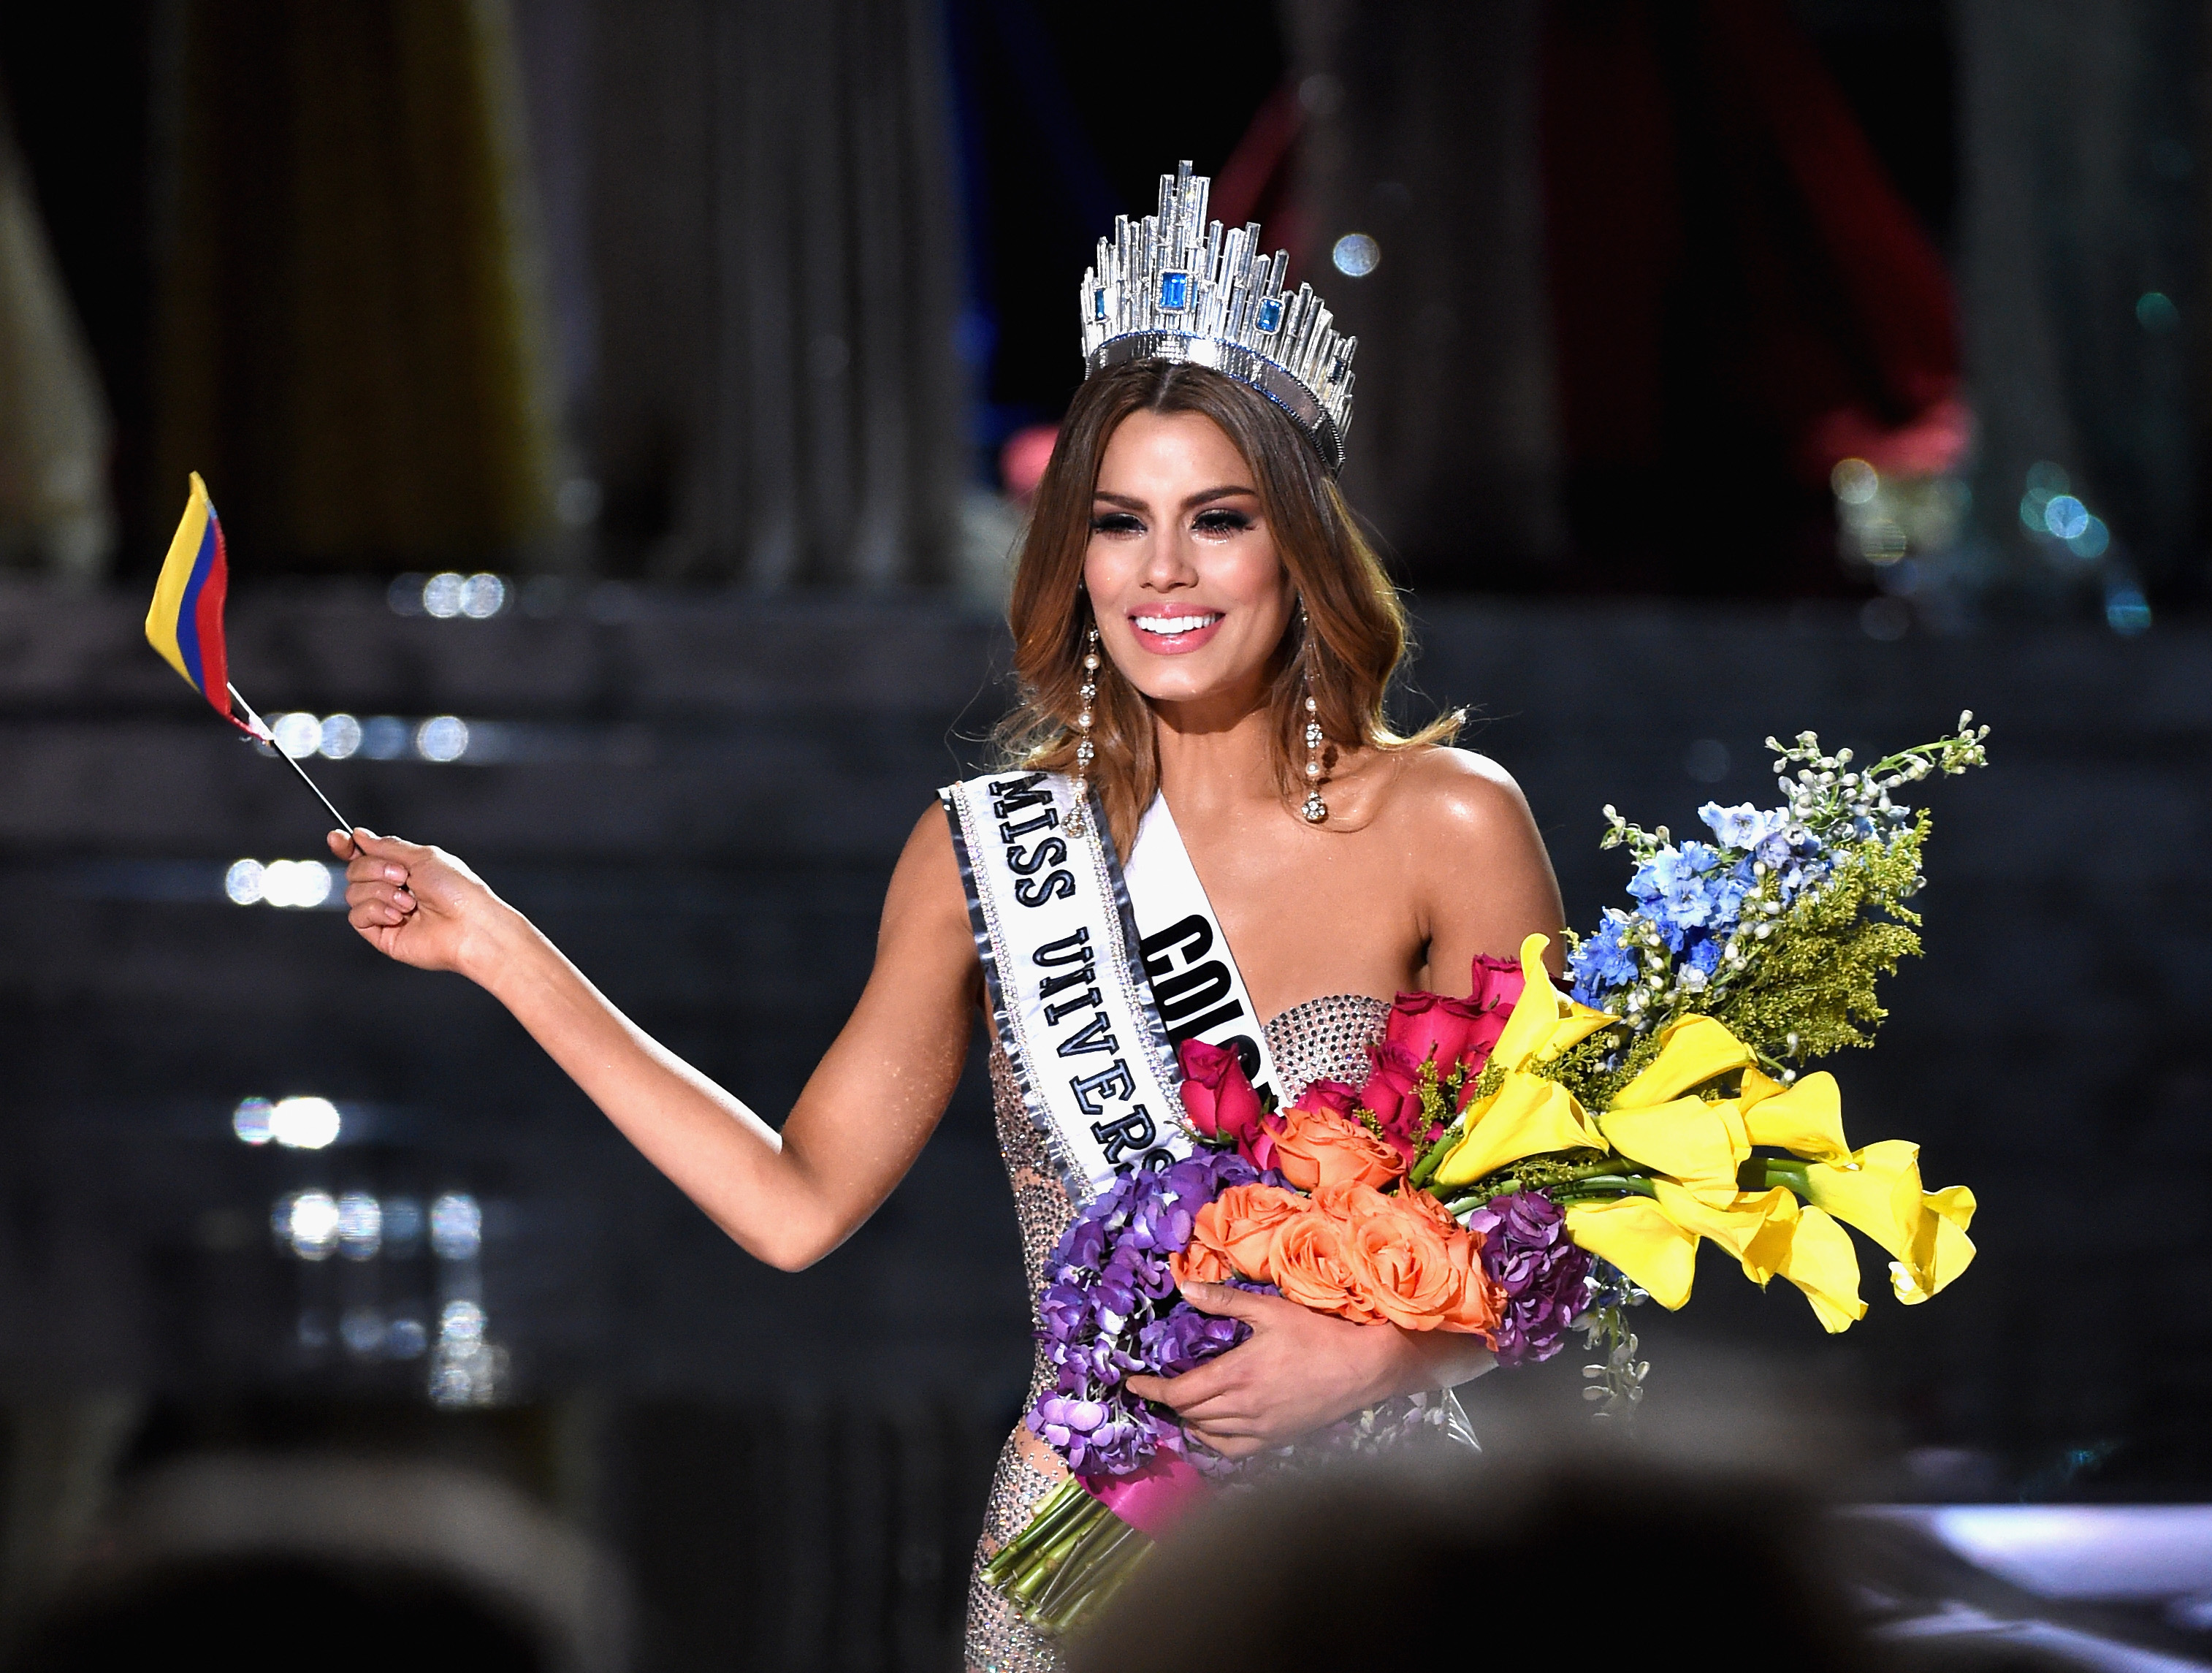 Miss Colombia 2015, Ariadna Gutierrez, is incorrectly named Miss Universe 2015 on Dec. 20, 2015 in Las Vegas, Nevada.